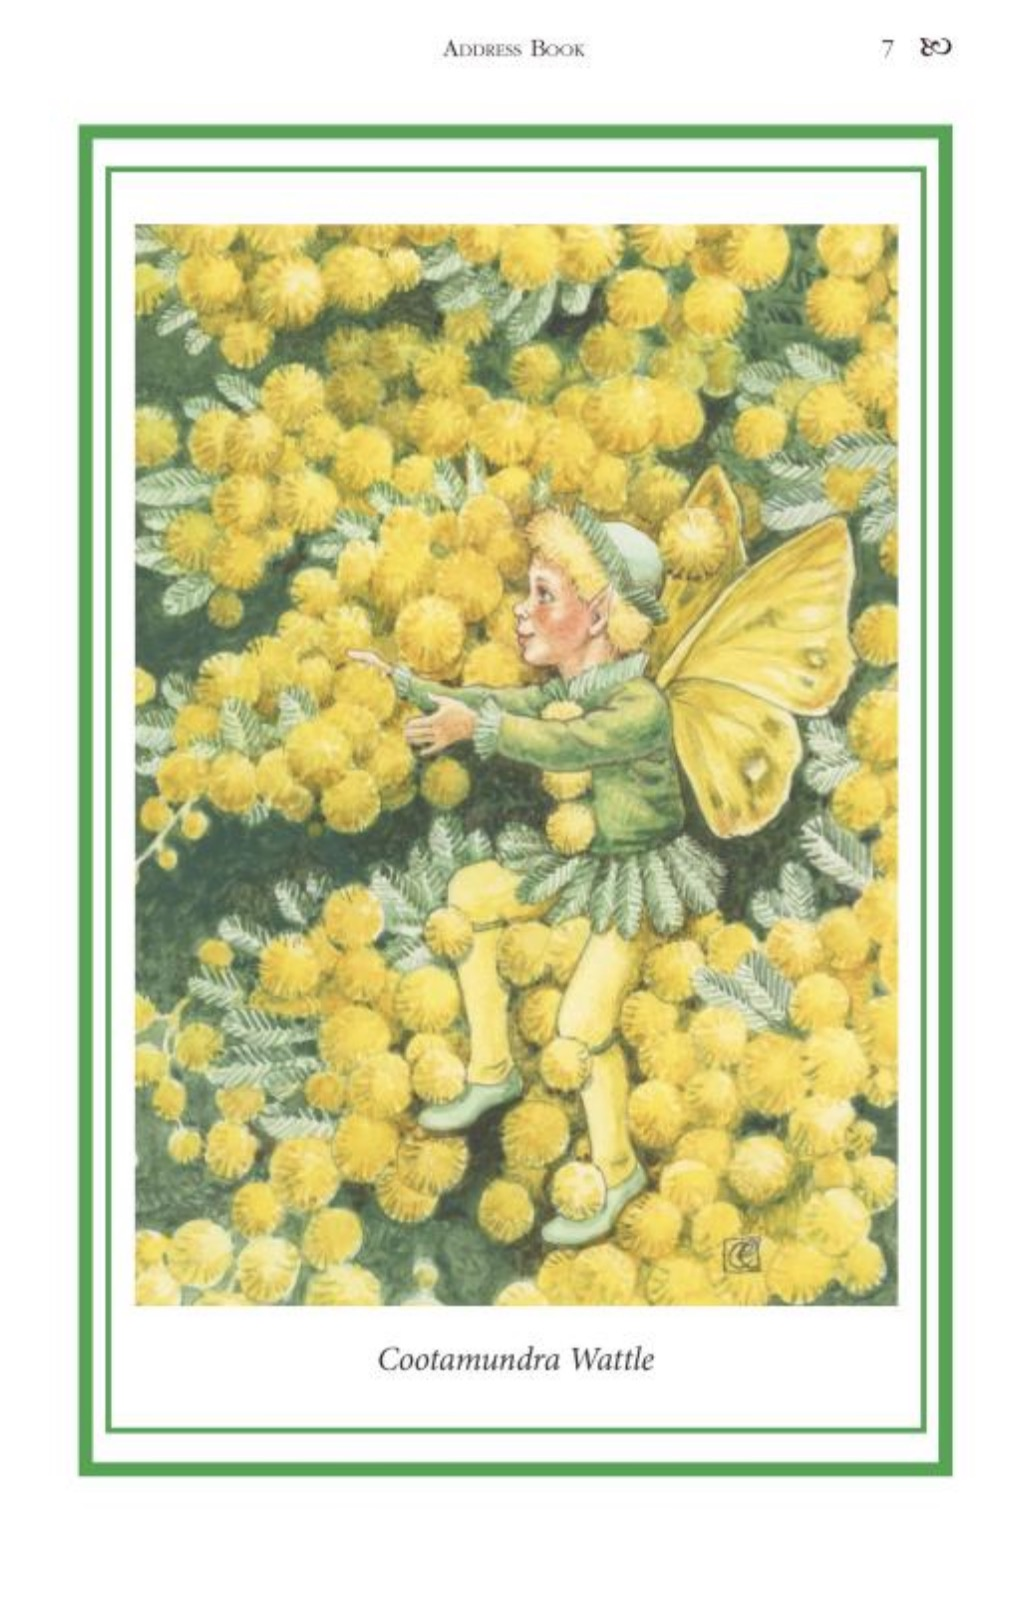 Elizabeth Alger Margaret Thornton Australian Flower Fairies Address Book Wattle Fairy